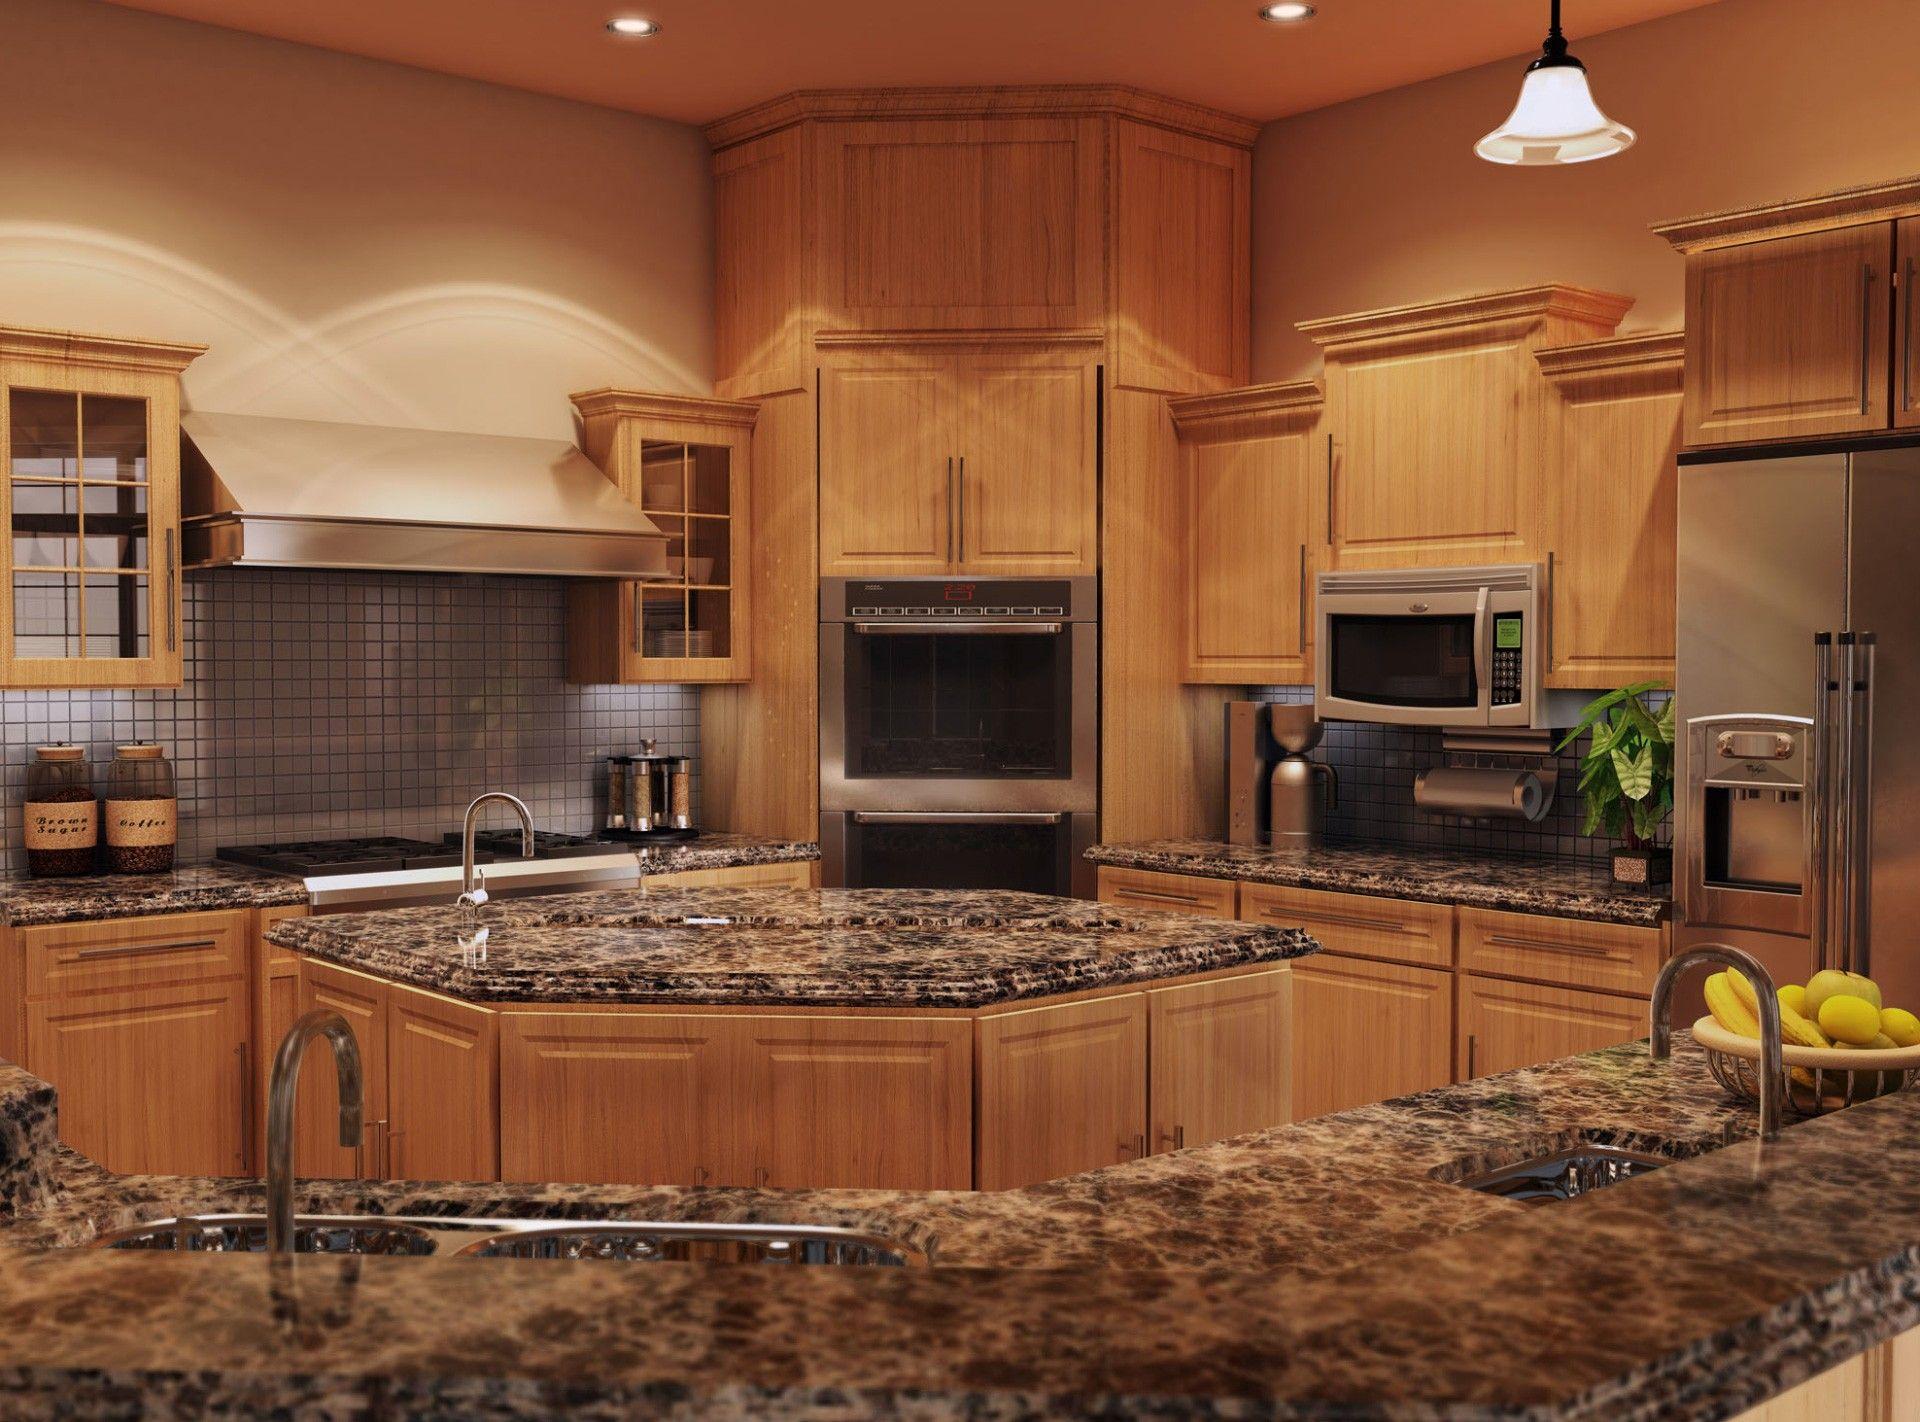 Modest Kitchen Countertop With Presenting White Finish